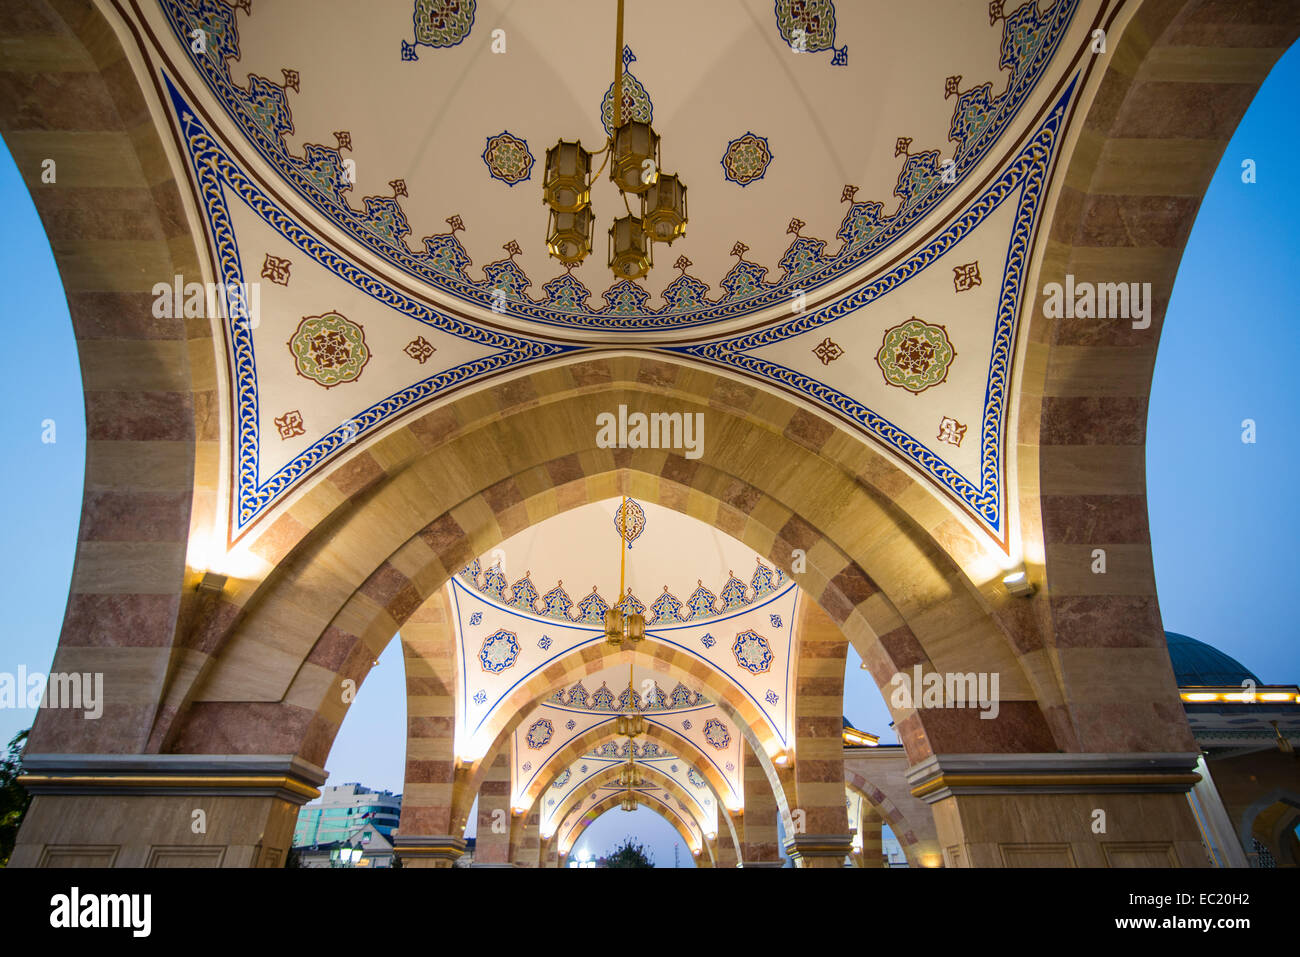 Ceiling in the Akhmad Kadyrov Mosque at dusk, Grozny, Chechnya, Caucasus, Russia Stock Photo